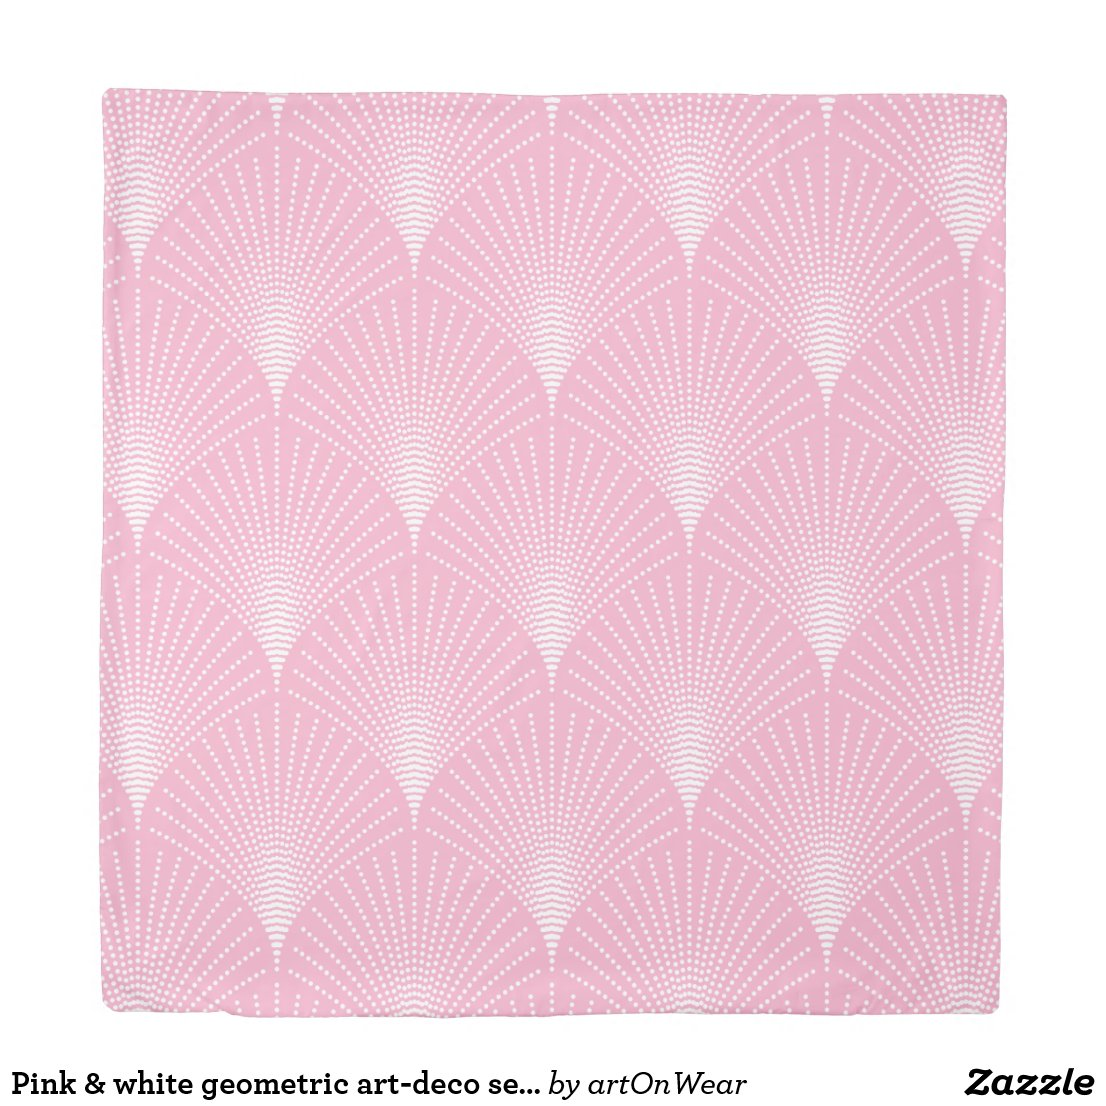 Pink & white geometric art-deco seamless pattern